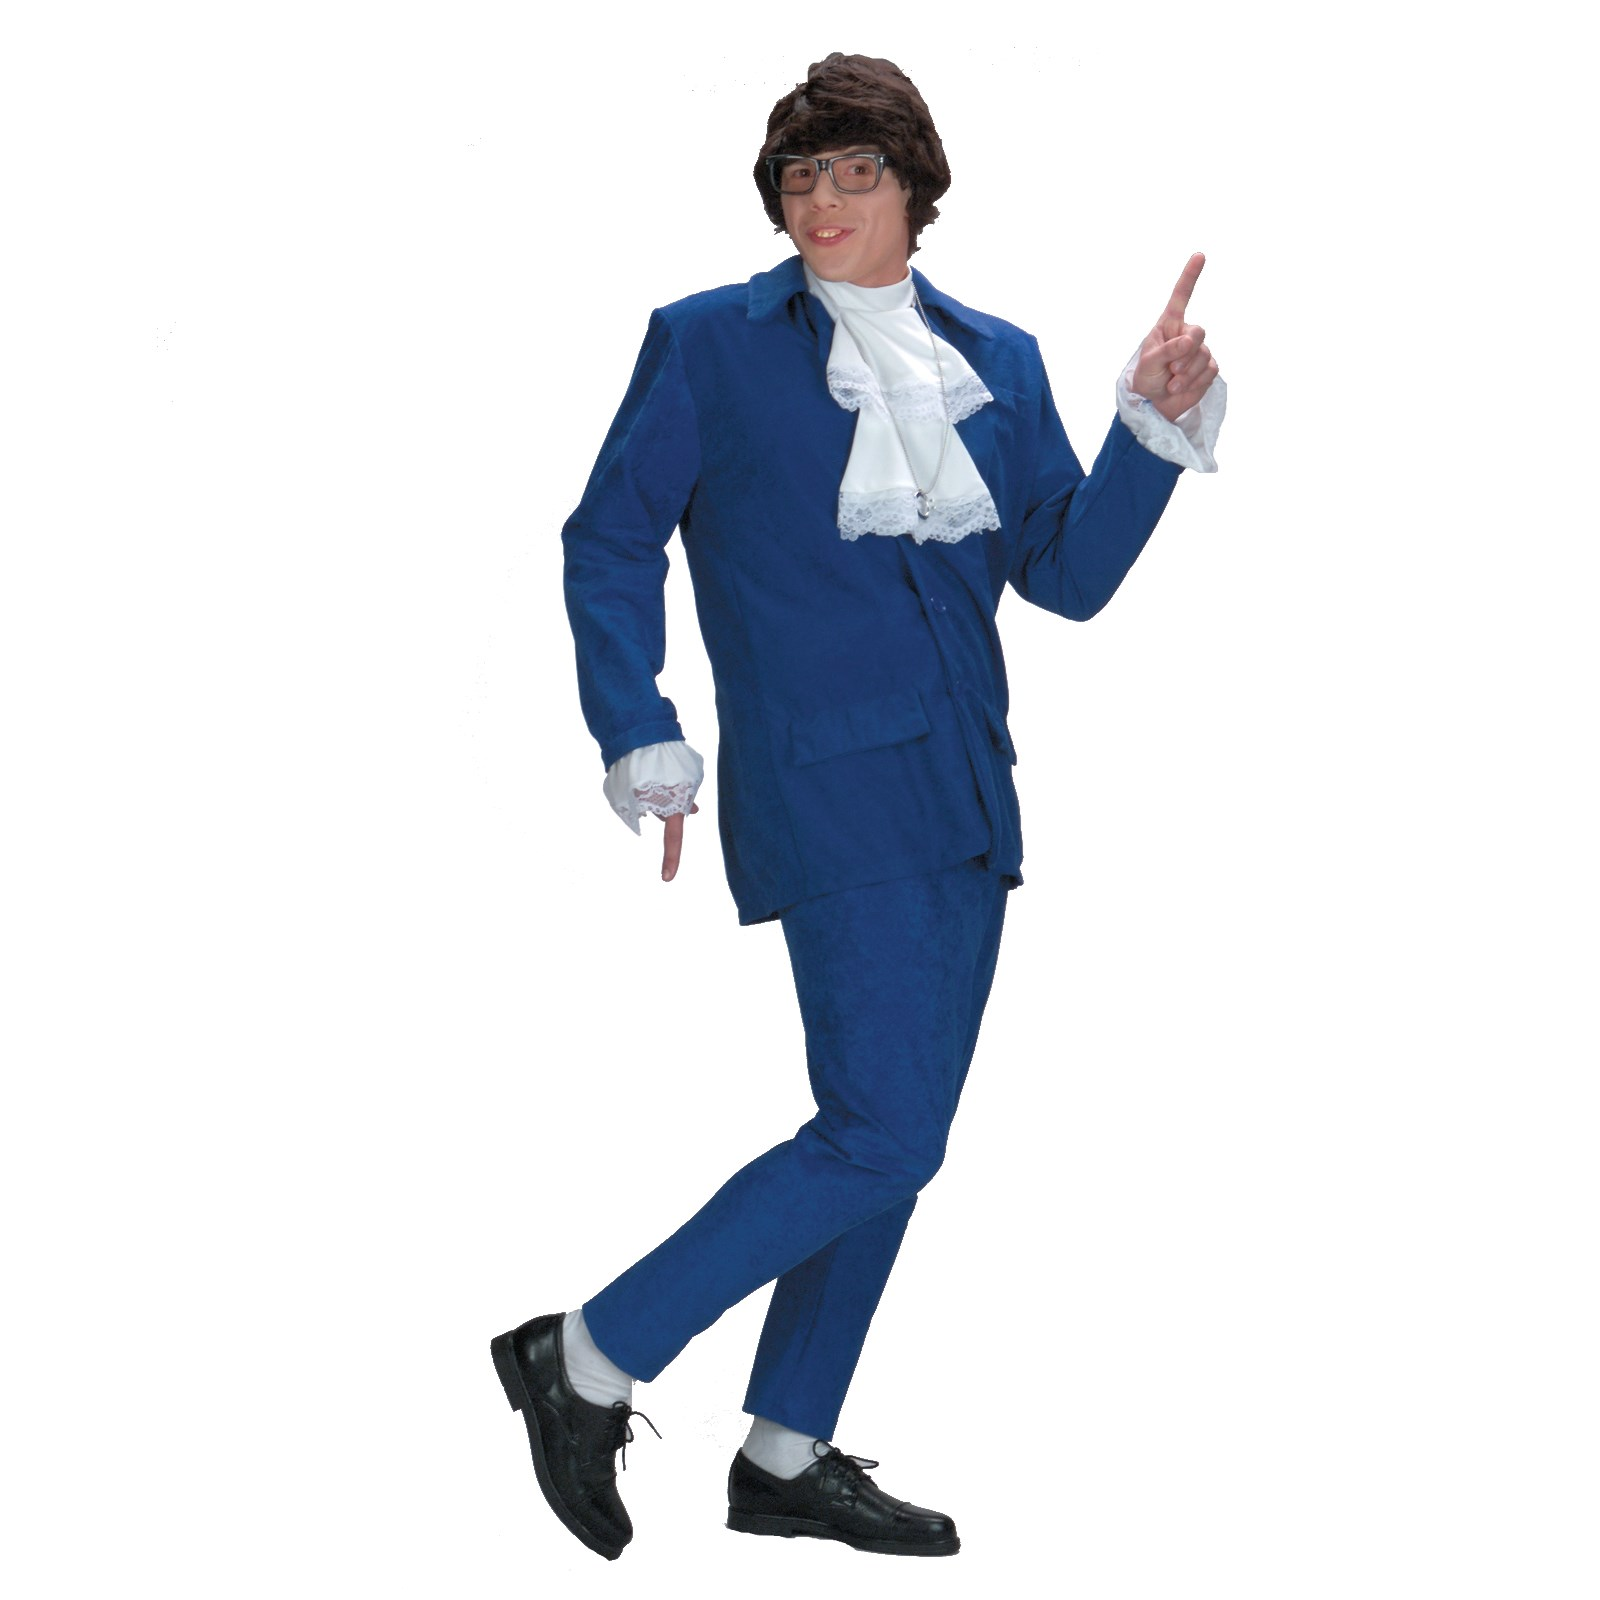 Image of Austin Powers Deluxe Adult Costume